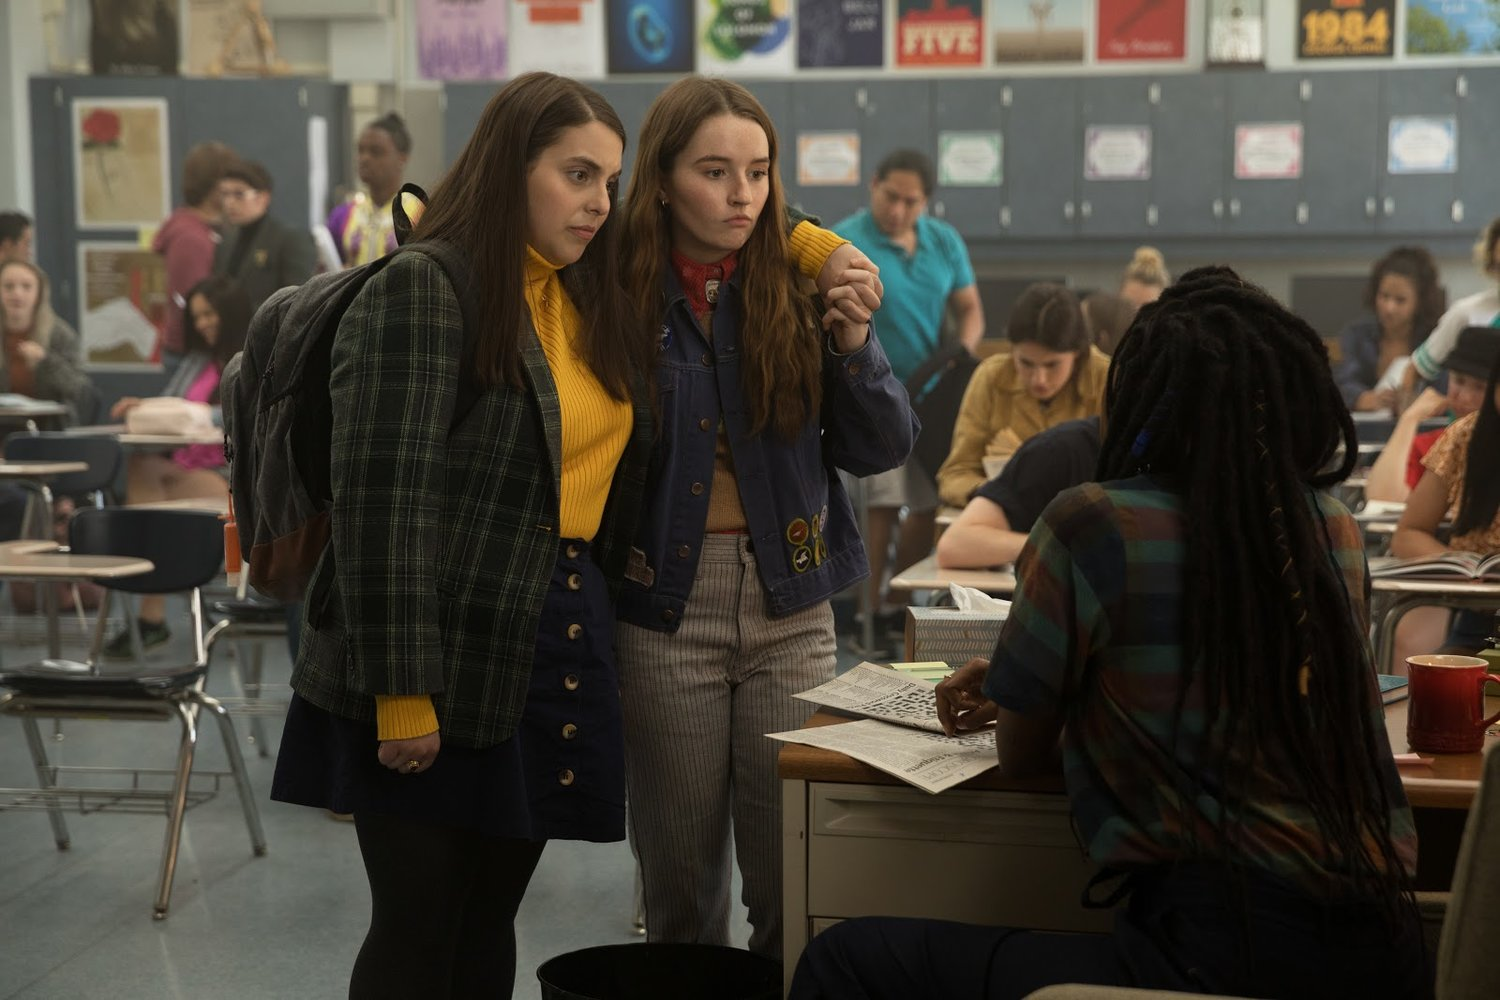 Molly (Beanie Feldstein) is known for being studious, not her fun-loving personality that we see throughout the film. She wears turtlenecks and a blazer to stand out and channel Ruth Bader Ginsburg. Her personal style is meant to feel out of place in California, mirroring her character being out of place in school. Photo Credit: Annapurna Pictures